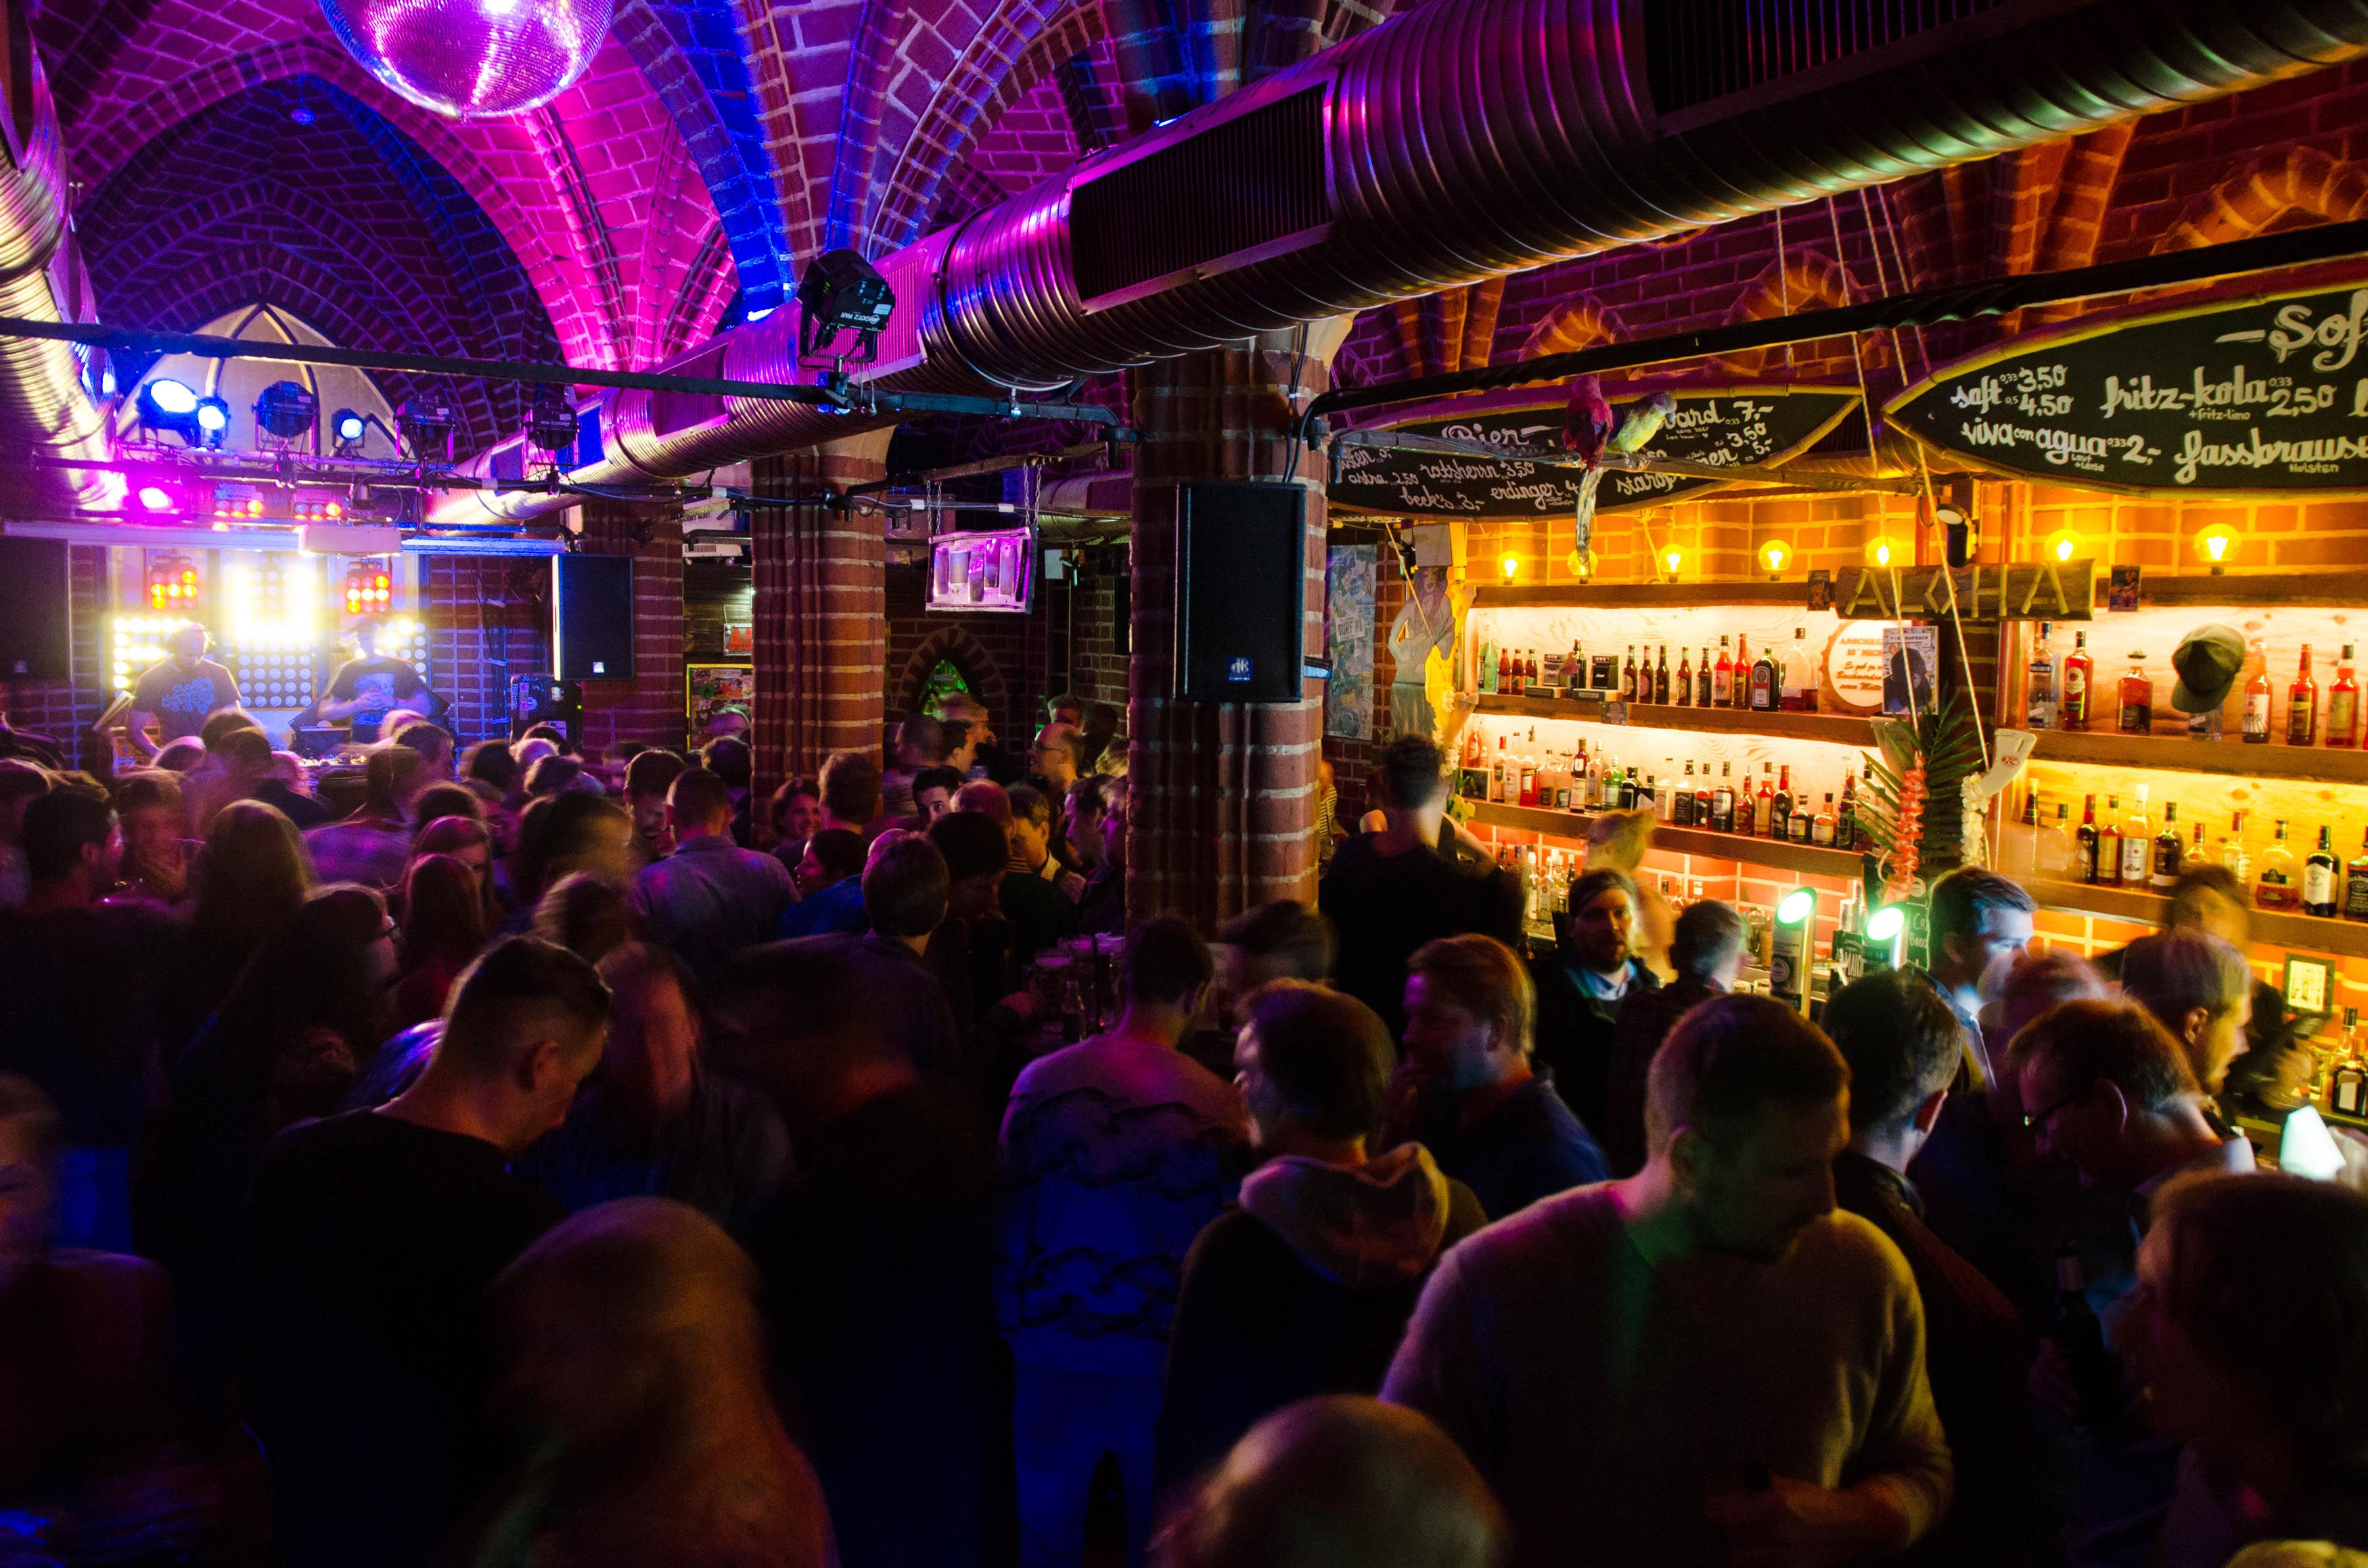 The Best Bars With Live Music In Hamburg